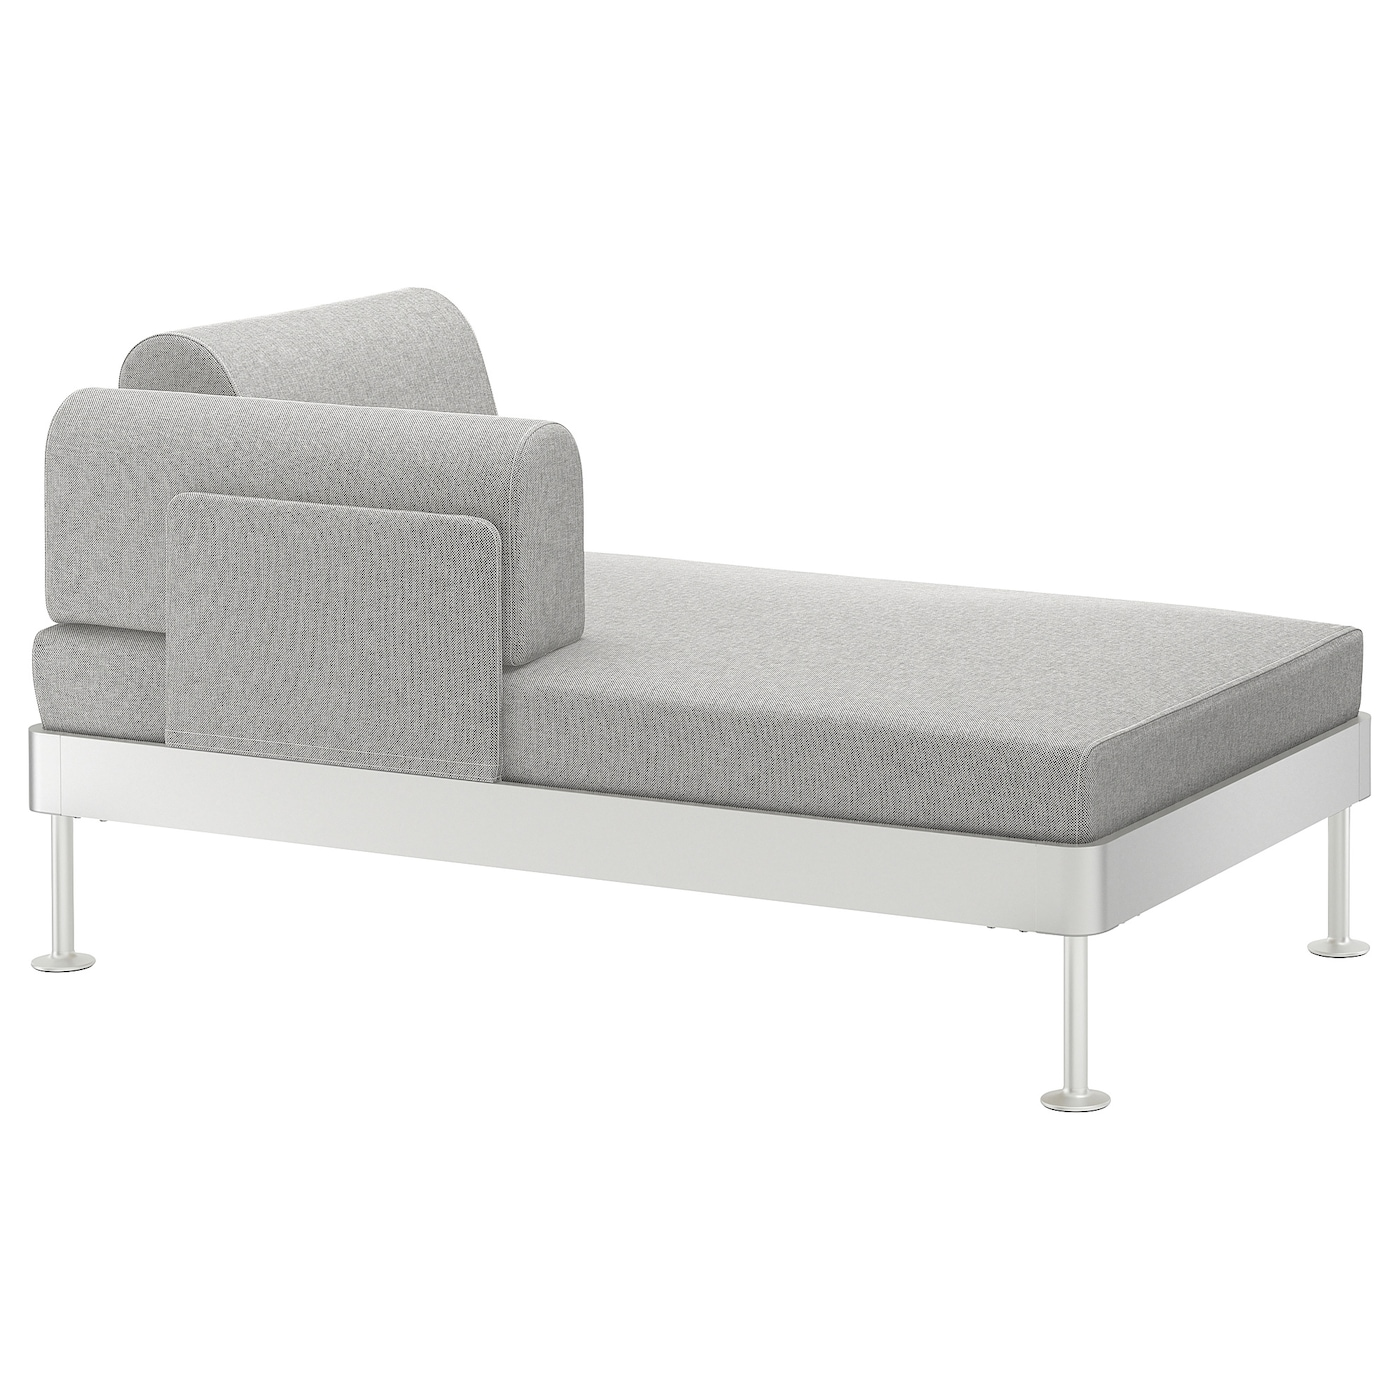 Chaise Lounges | IKEA on chaise recliner chair, chaise sofa sleeper, chaise furniture,